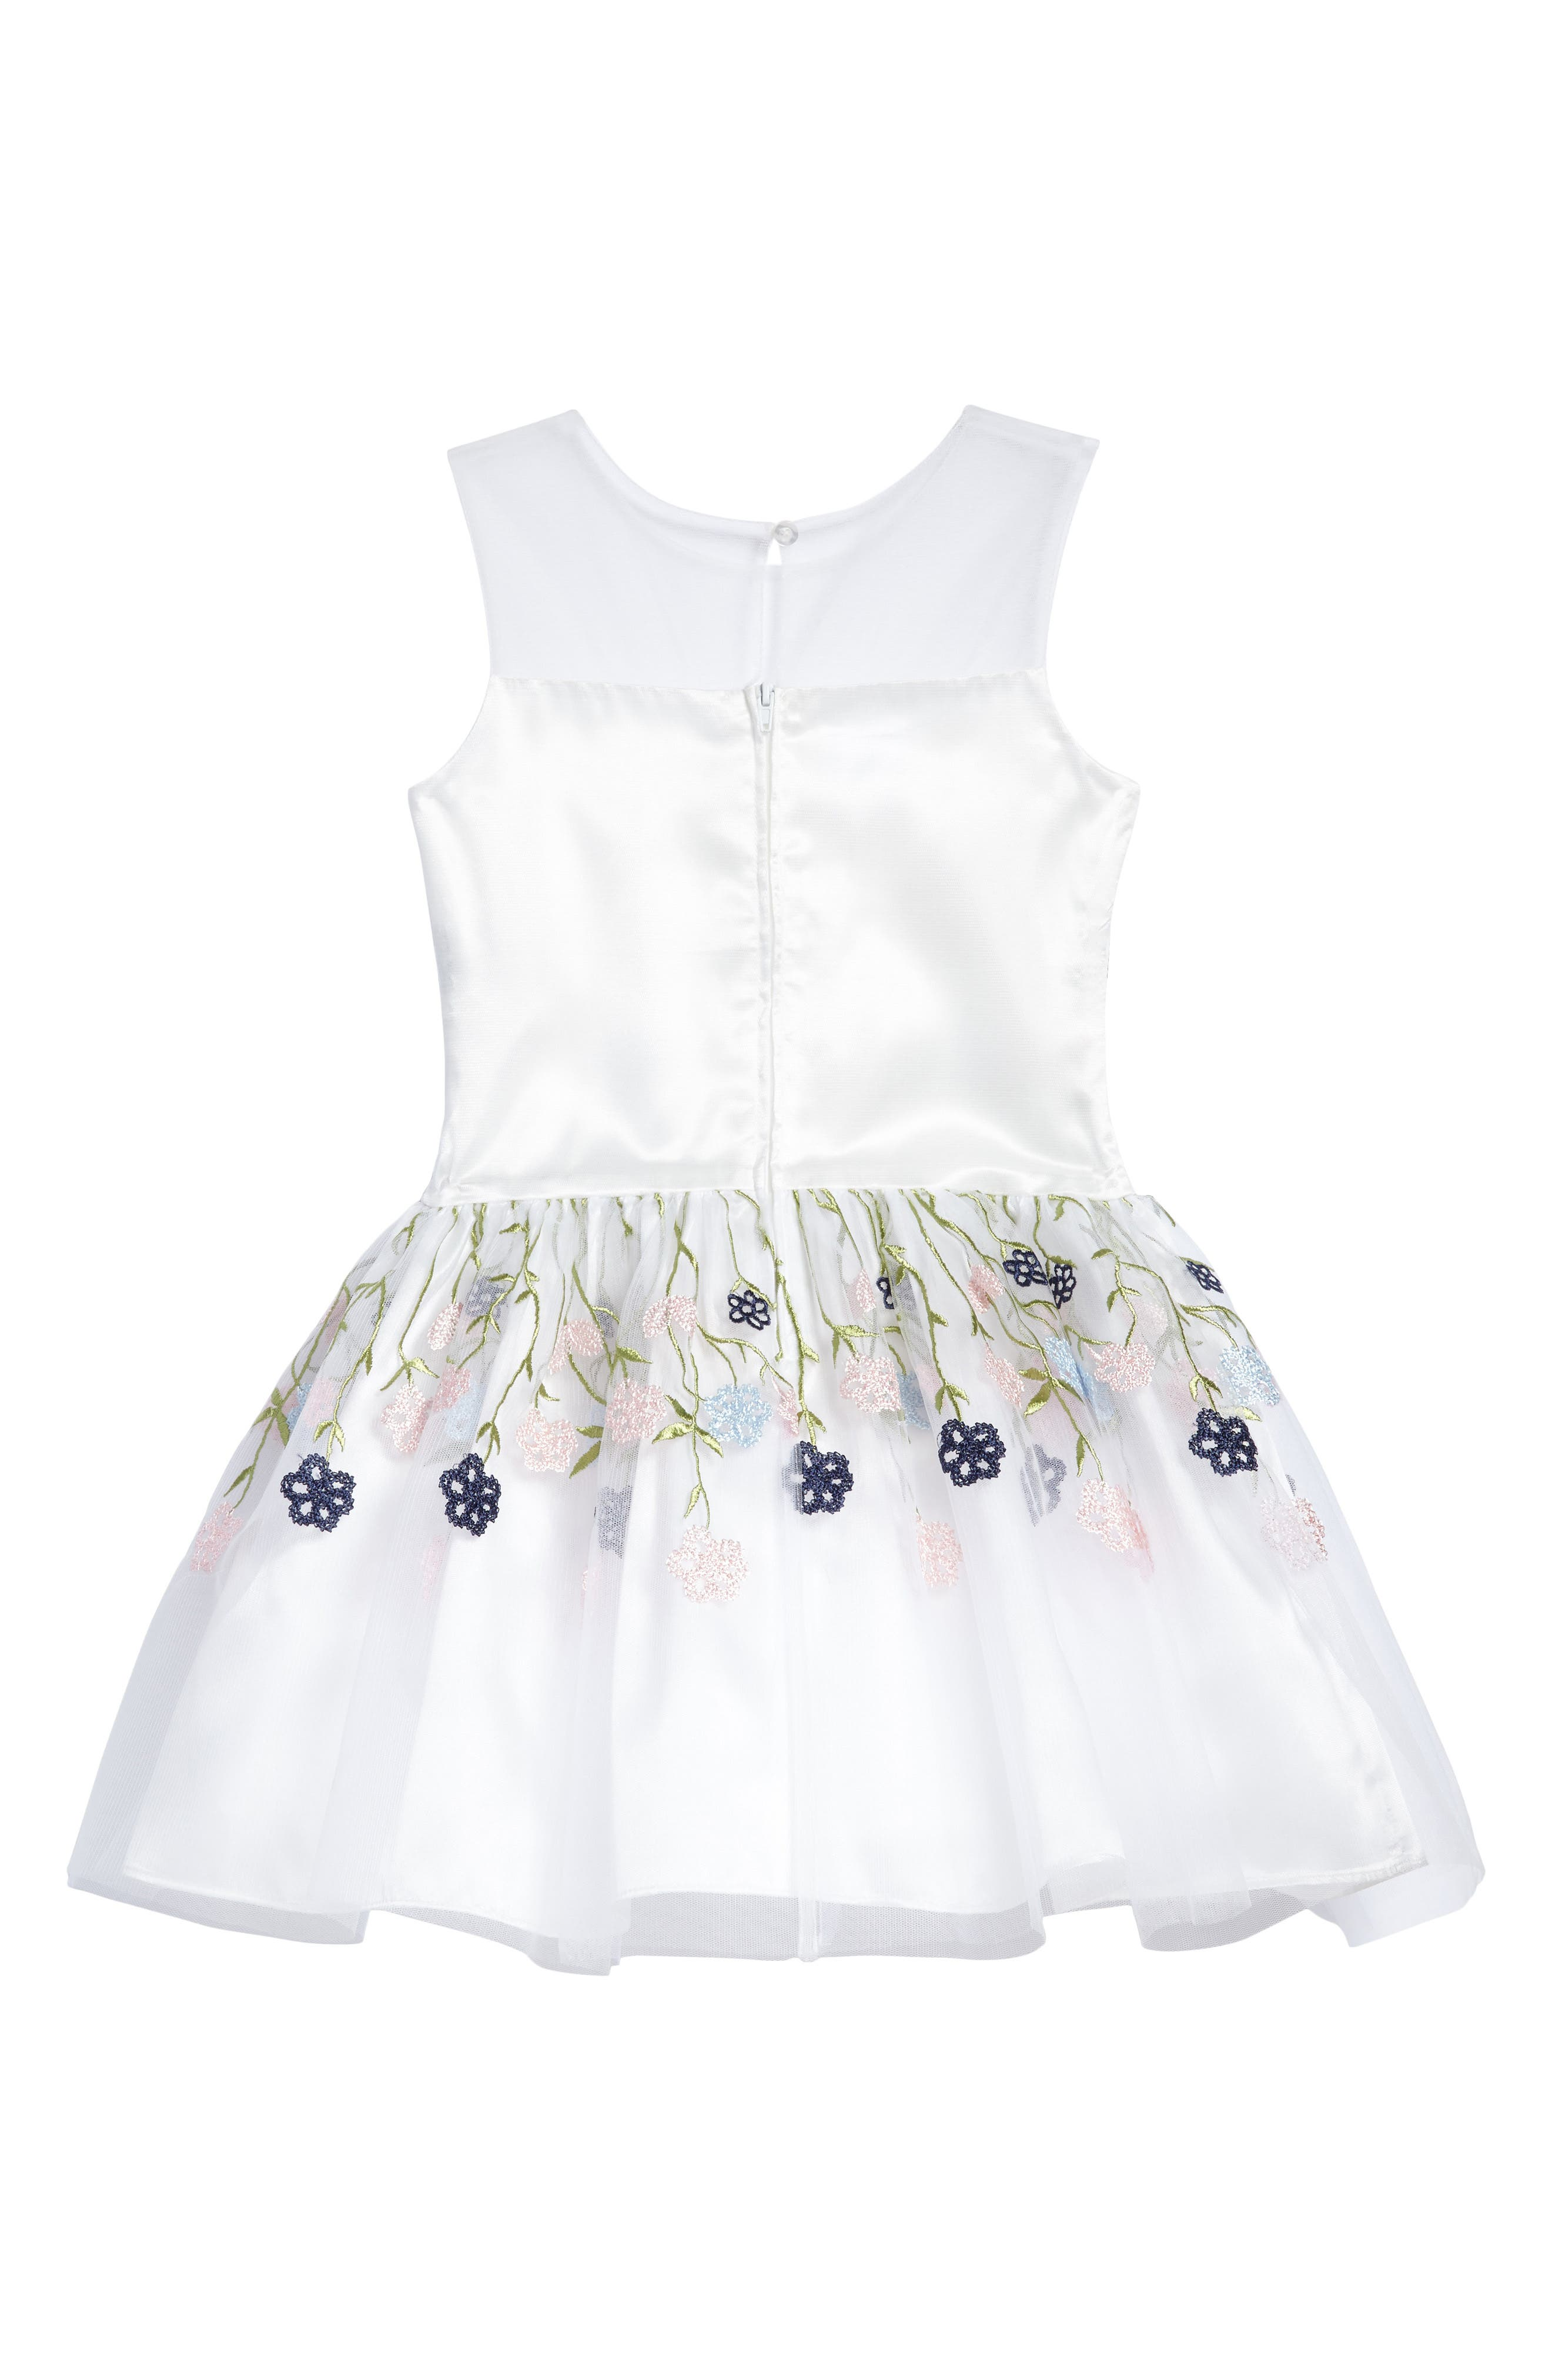 Floral Embroidered Dress,                             Alternate thumbnail 2, color,                             100